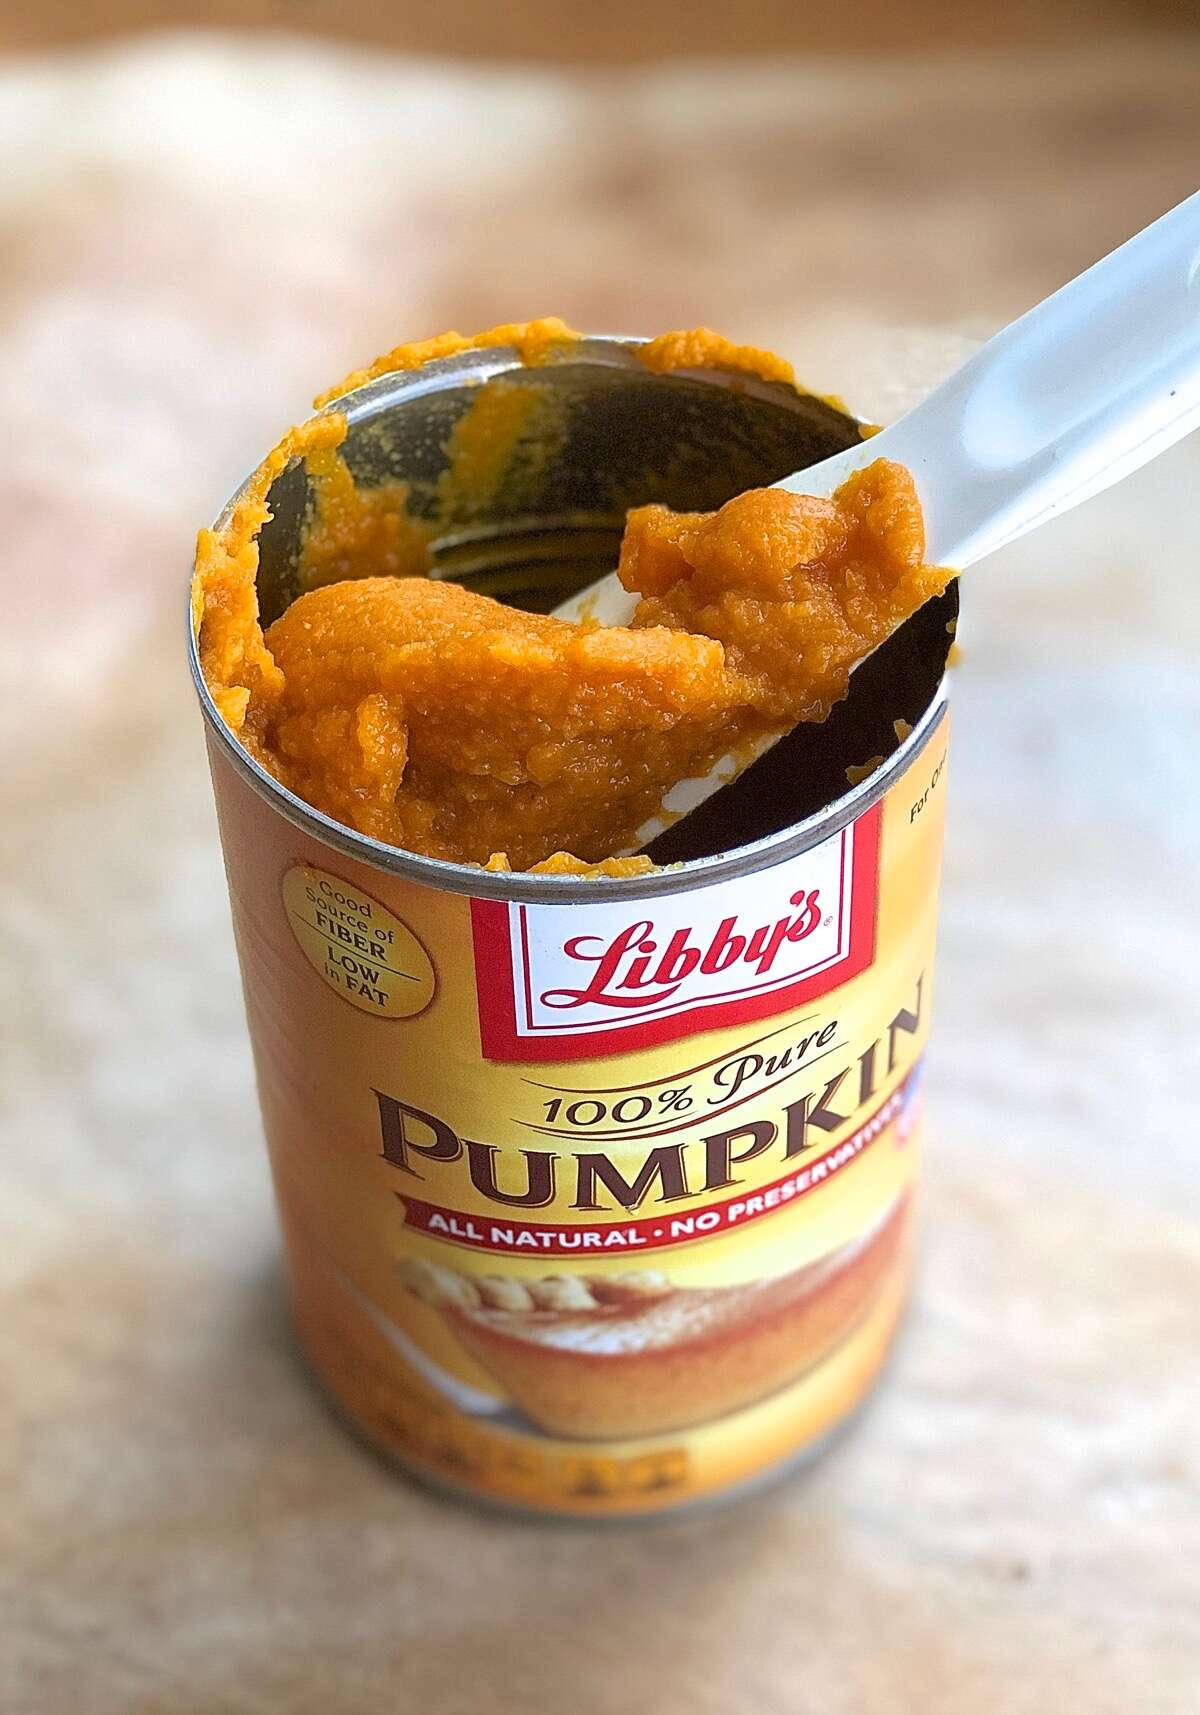 Pumpkin purée being spooned out of half-empty pumpkin can